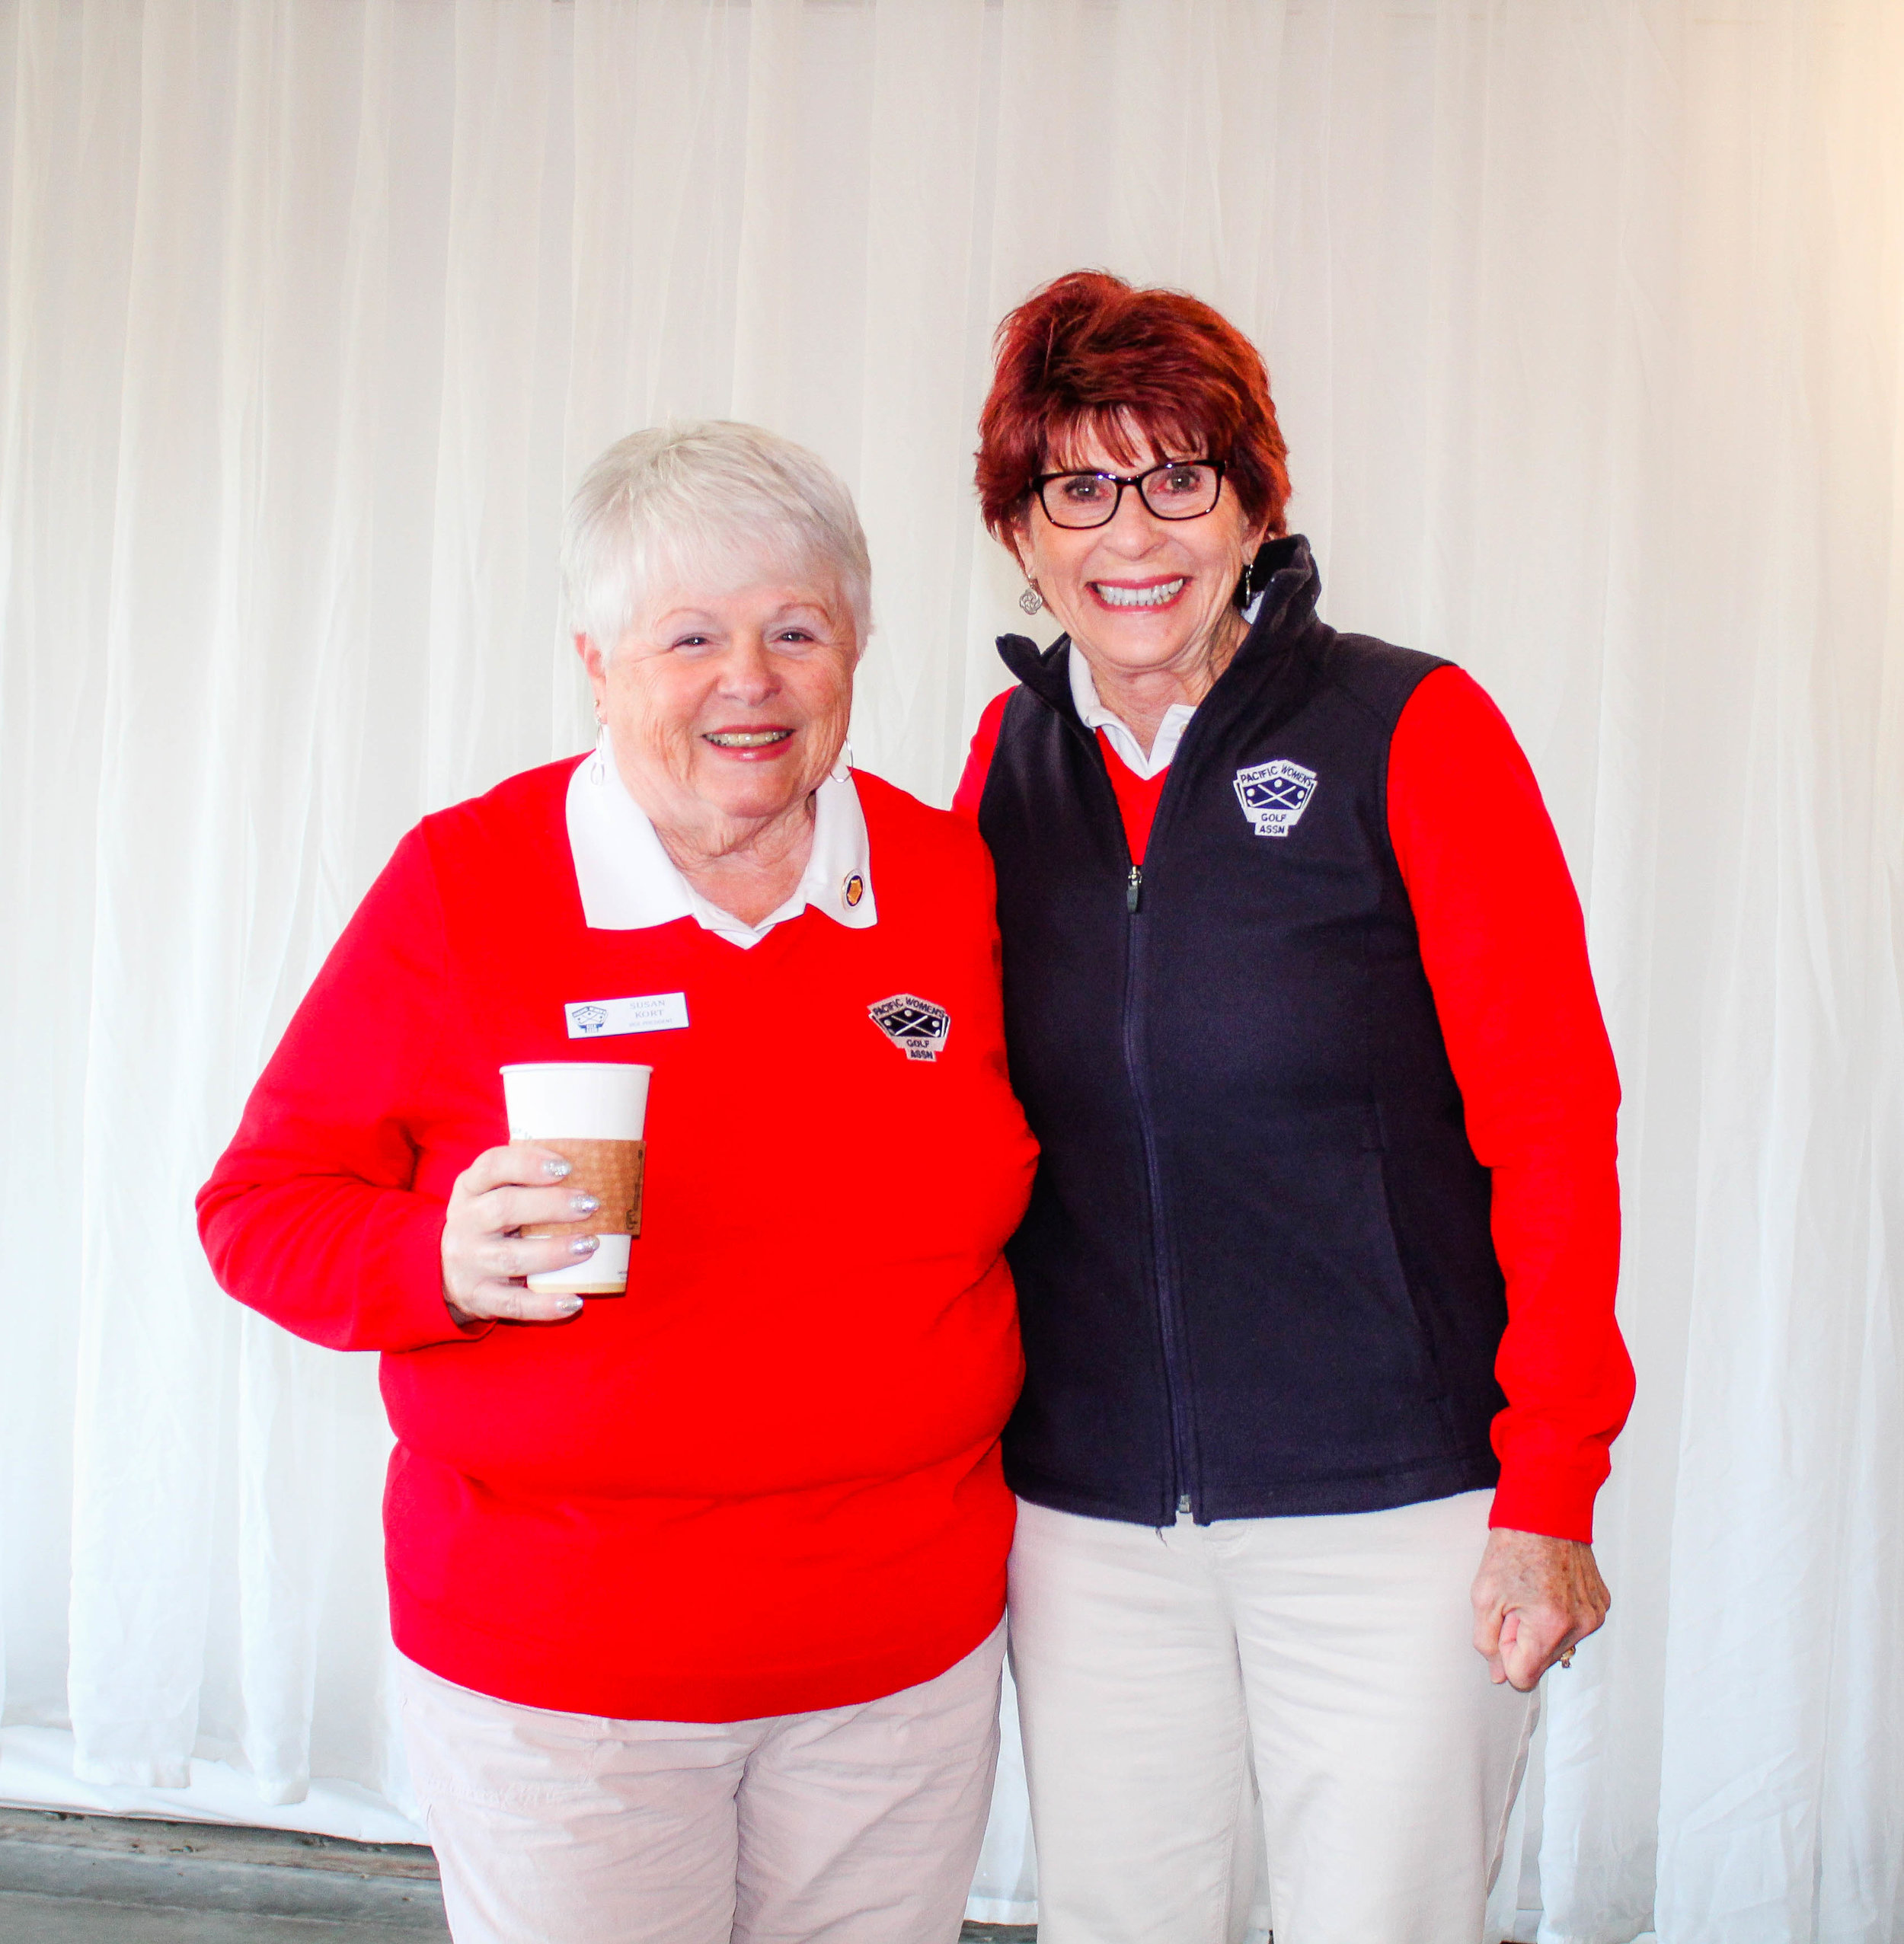 Left to right: Sue Kort, PWGA Vice President, and Sandra Ferarrio, PWGA Nine-Hole Club Director.